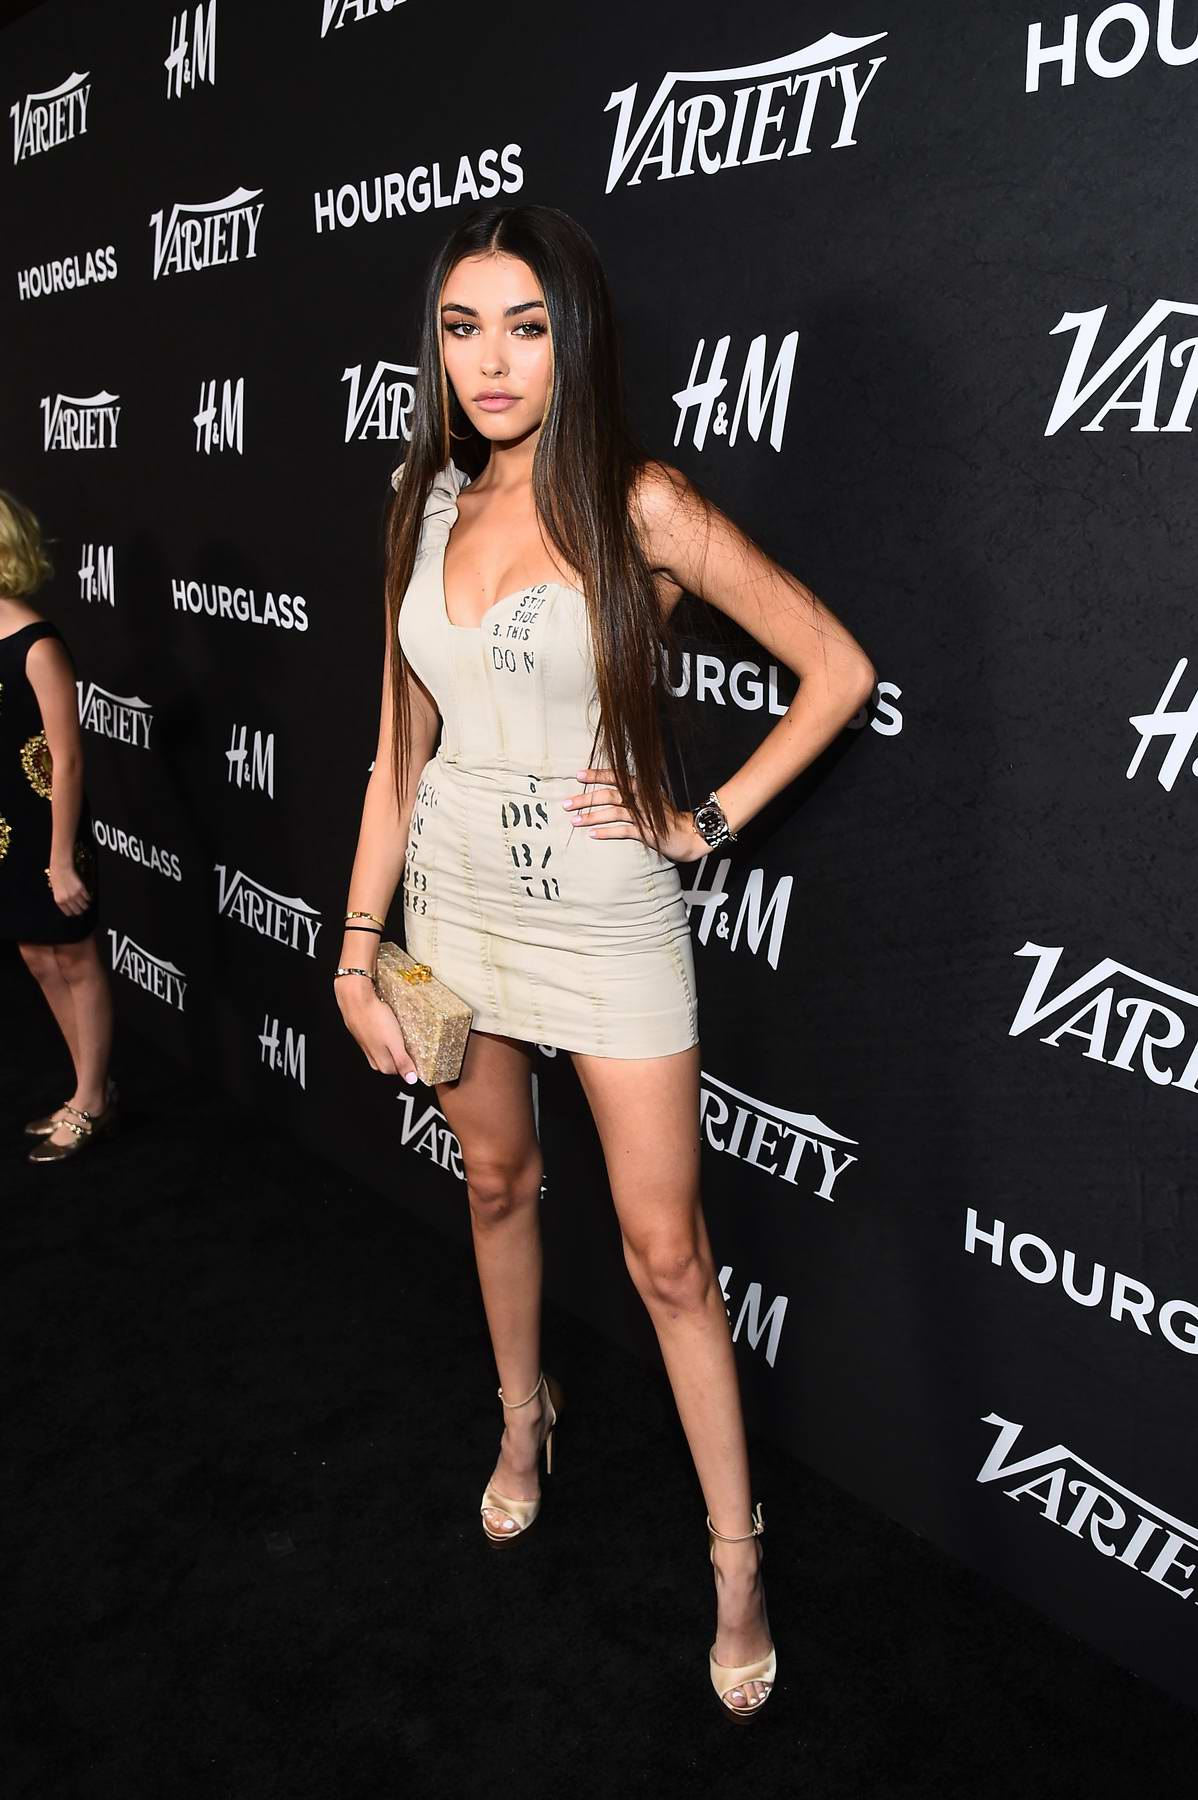 Madison Beer attends 'Variety Annual Power of Young Hollywood' in Los Angeles